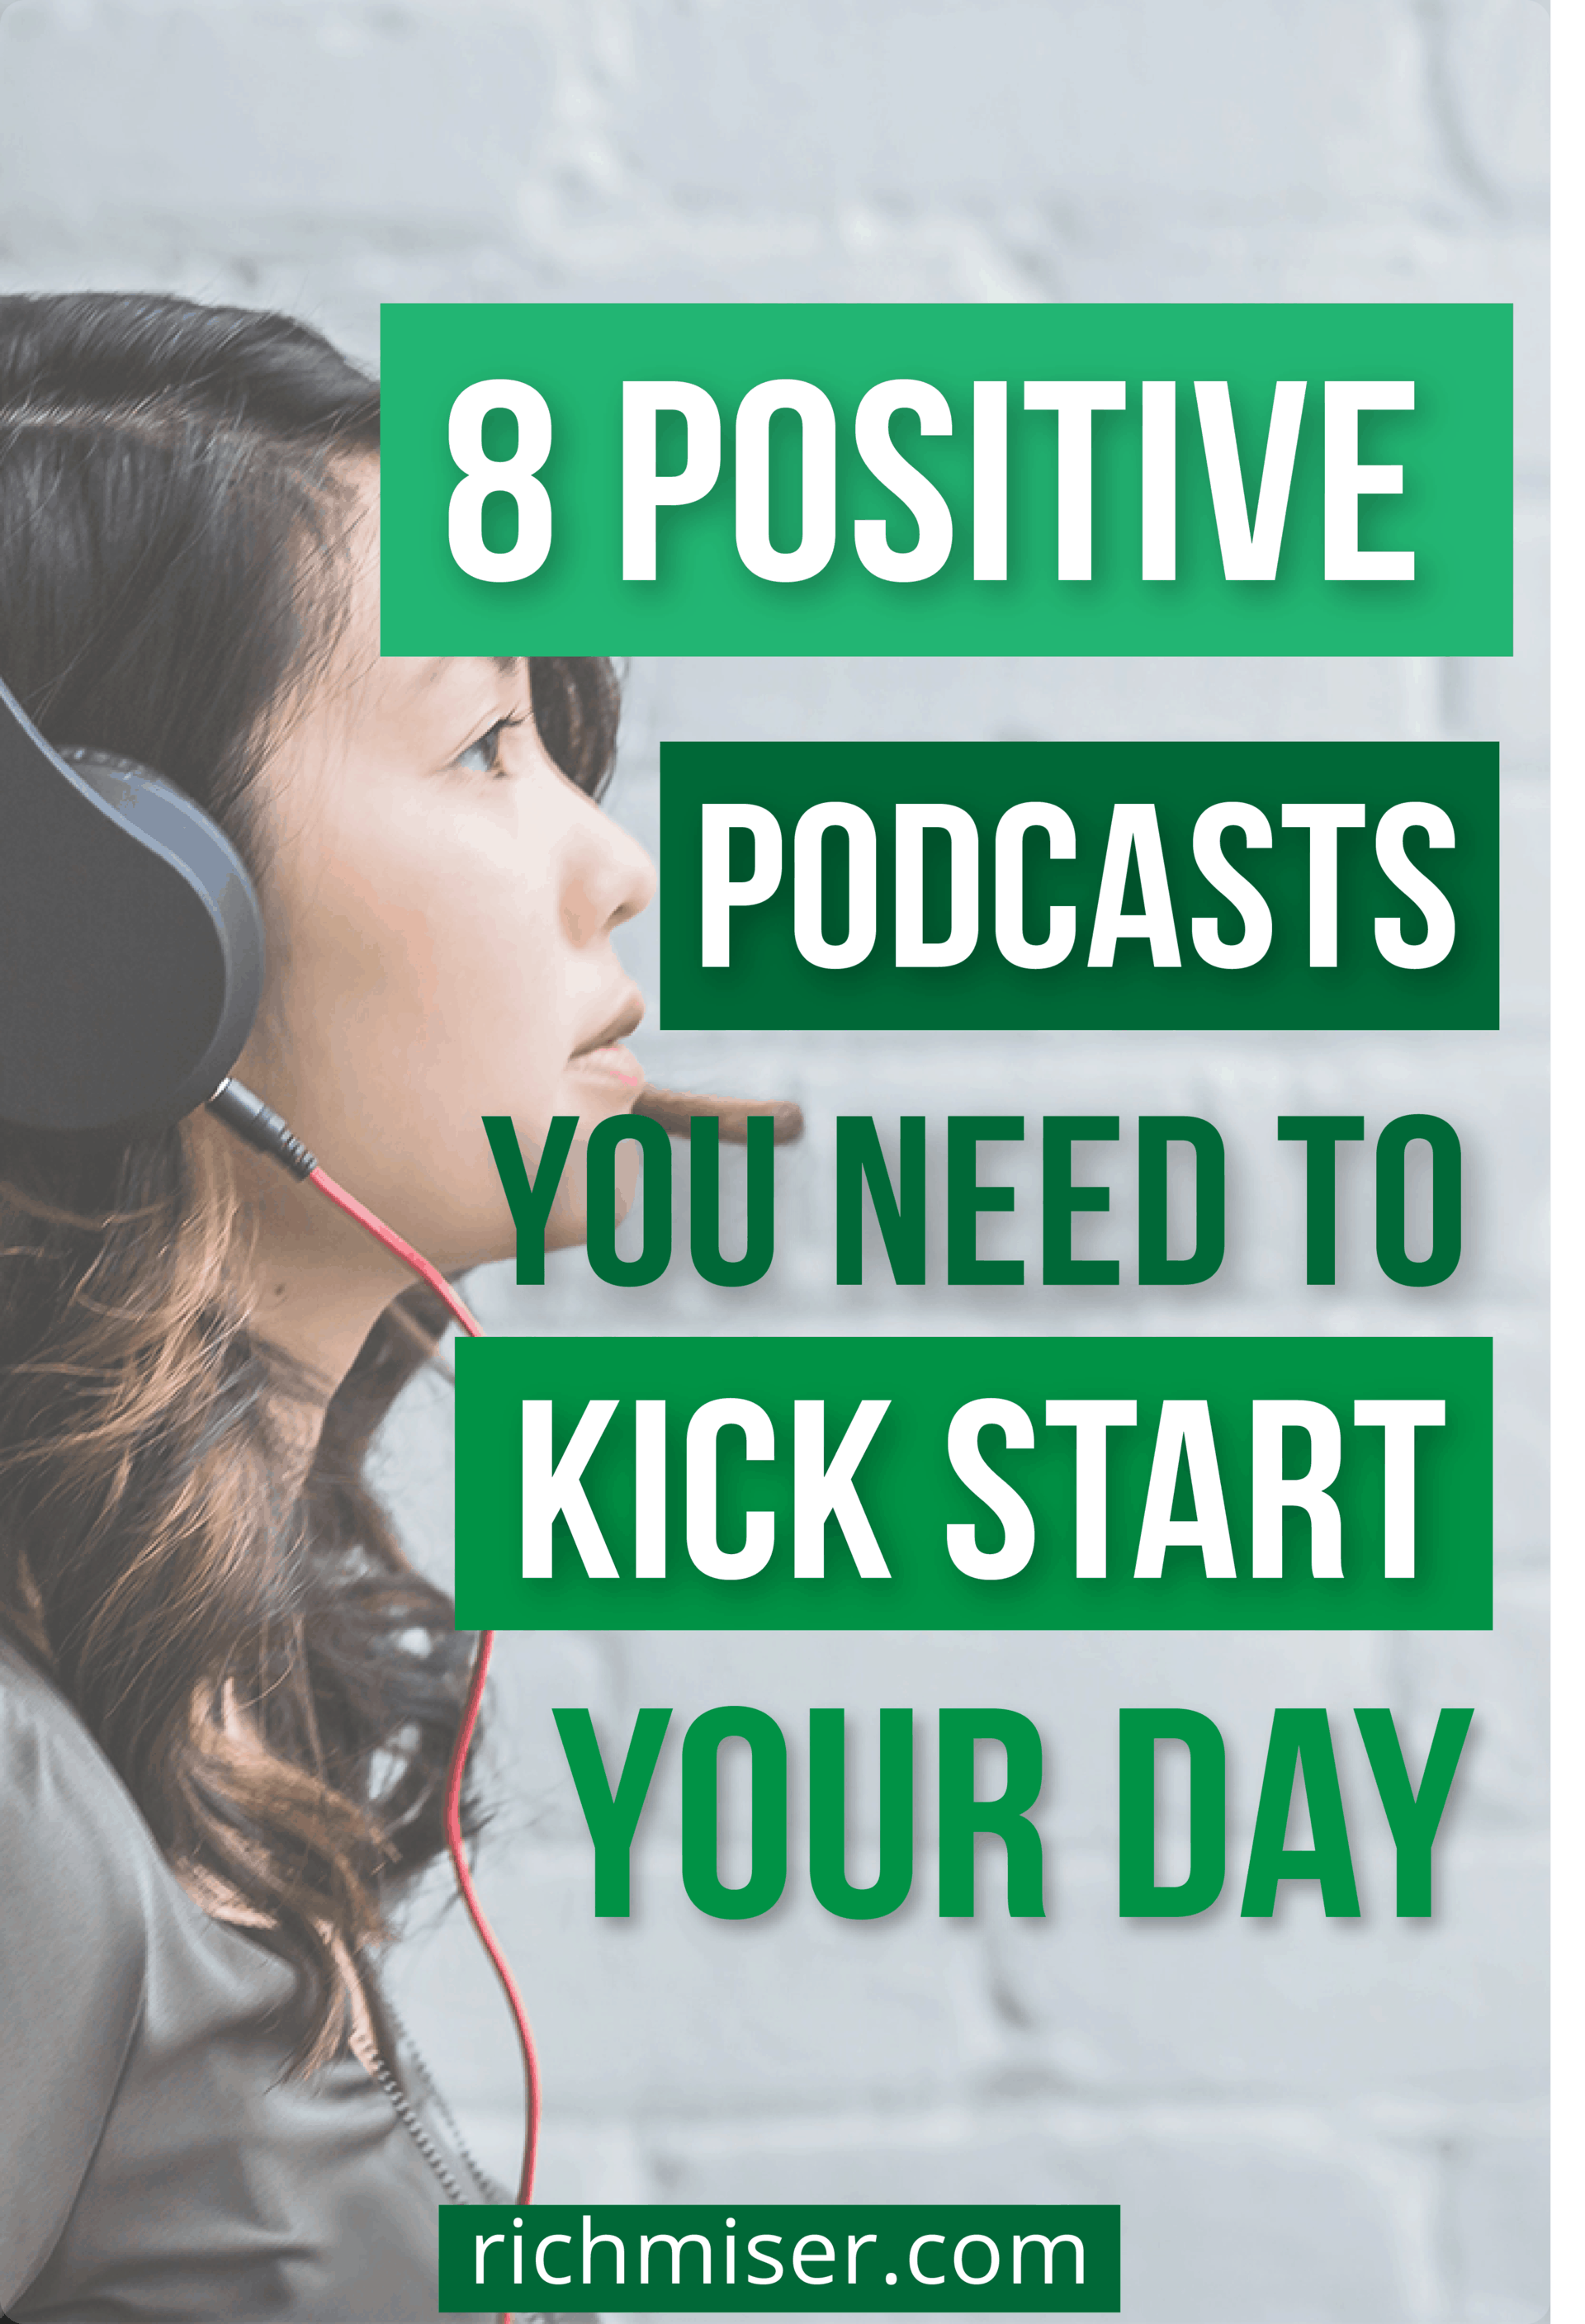 8 Positive Podcasts You Need to Kick Start Your Day